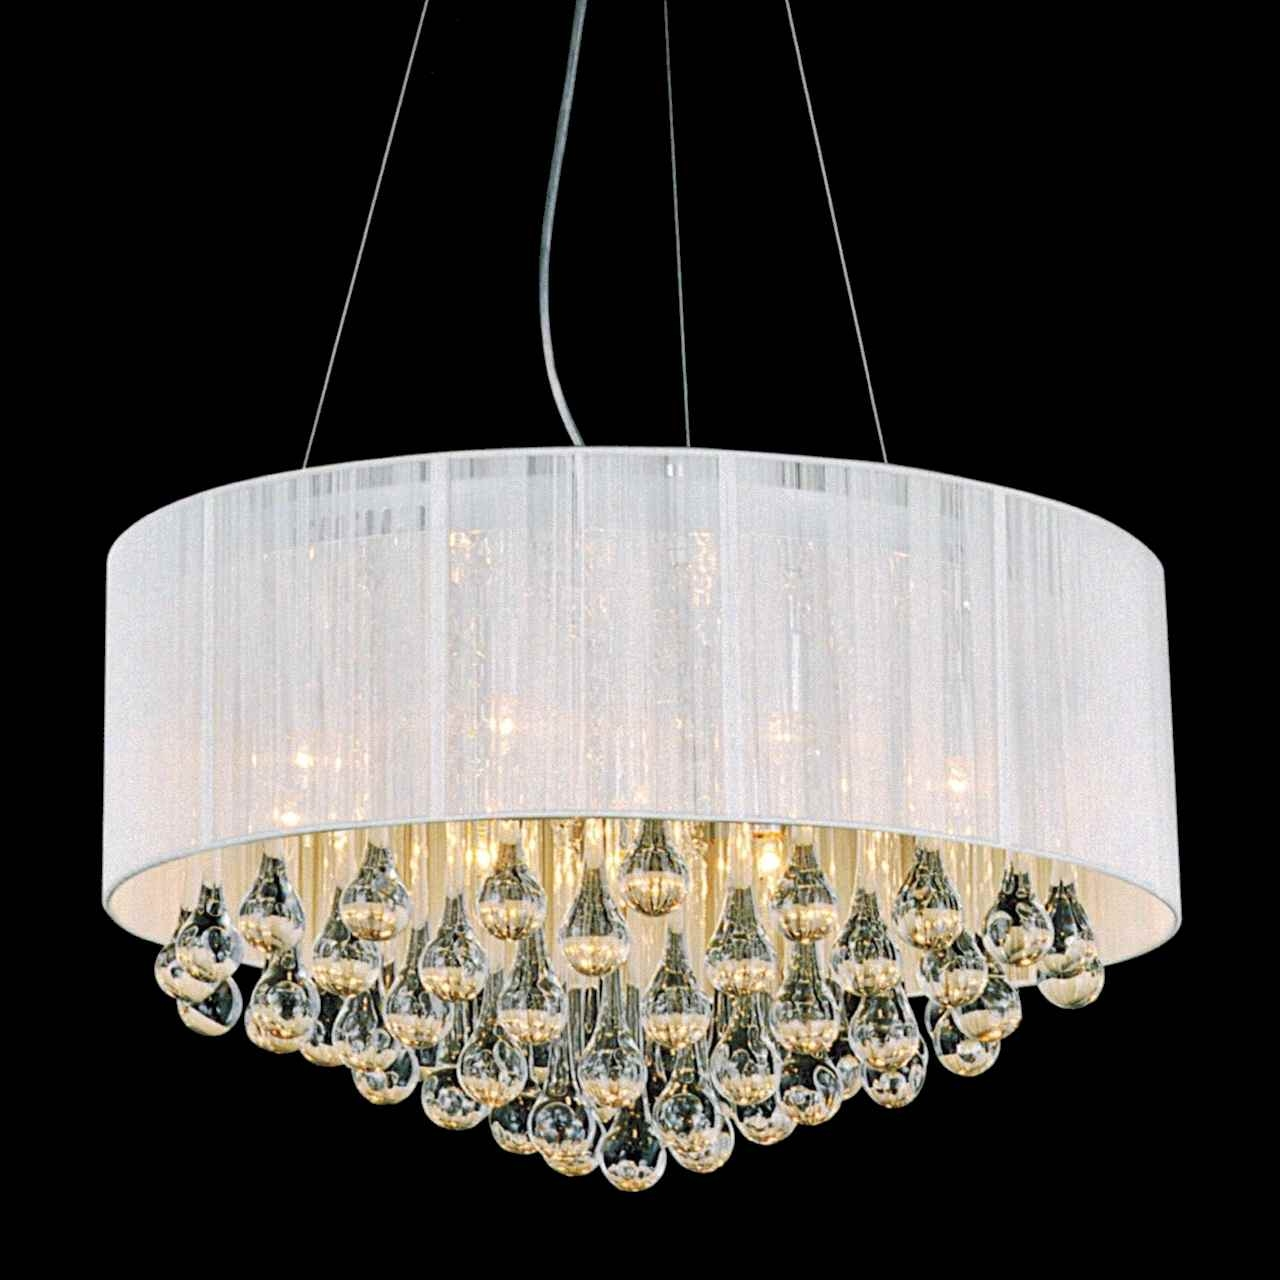 Contemporary Chandelier Design Ideas Inspiration Home Designs Regarding Contemporary Chandelier (View 15 of 15)